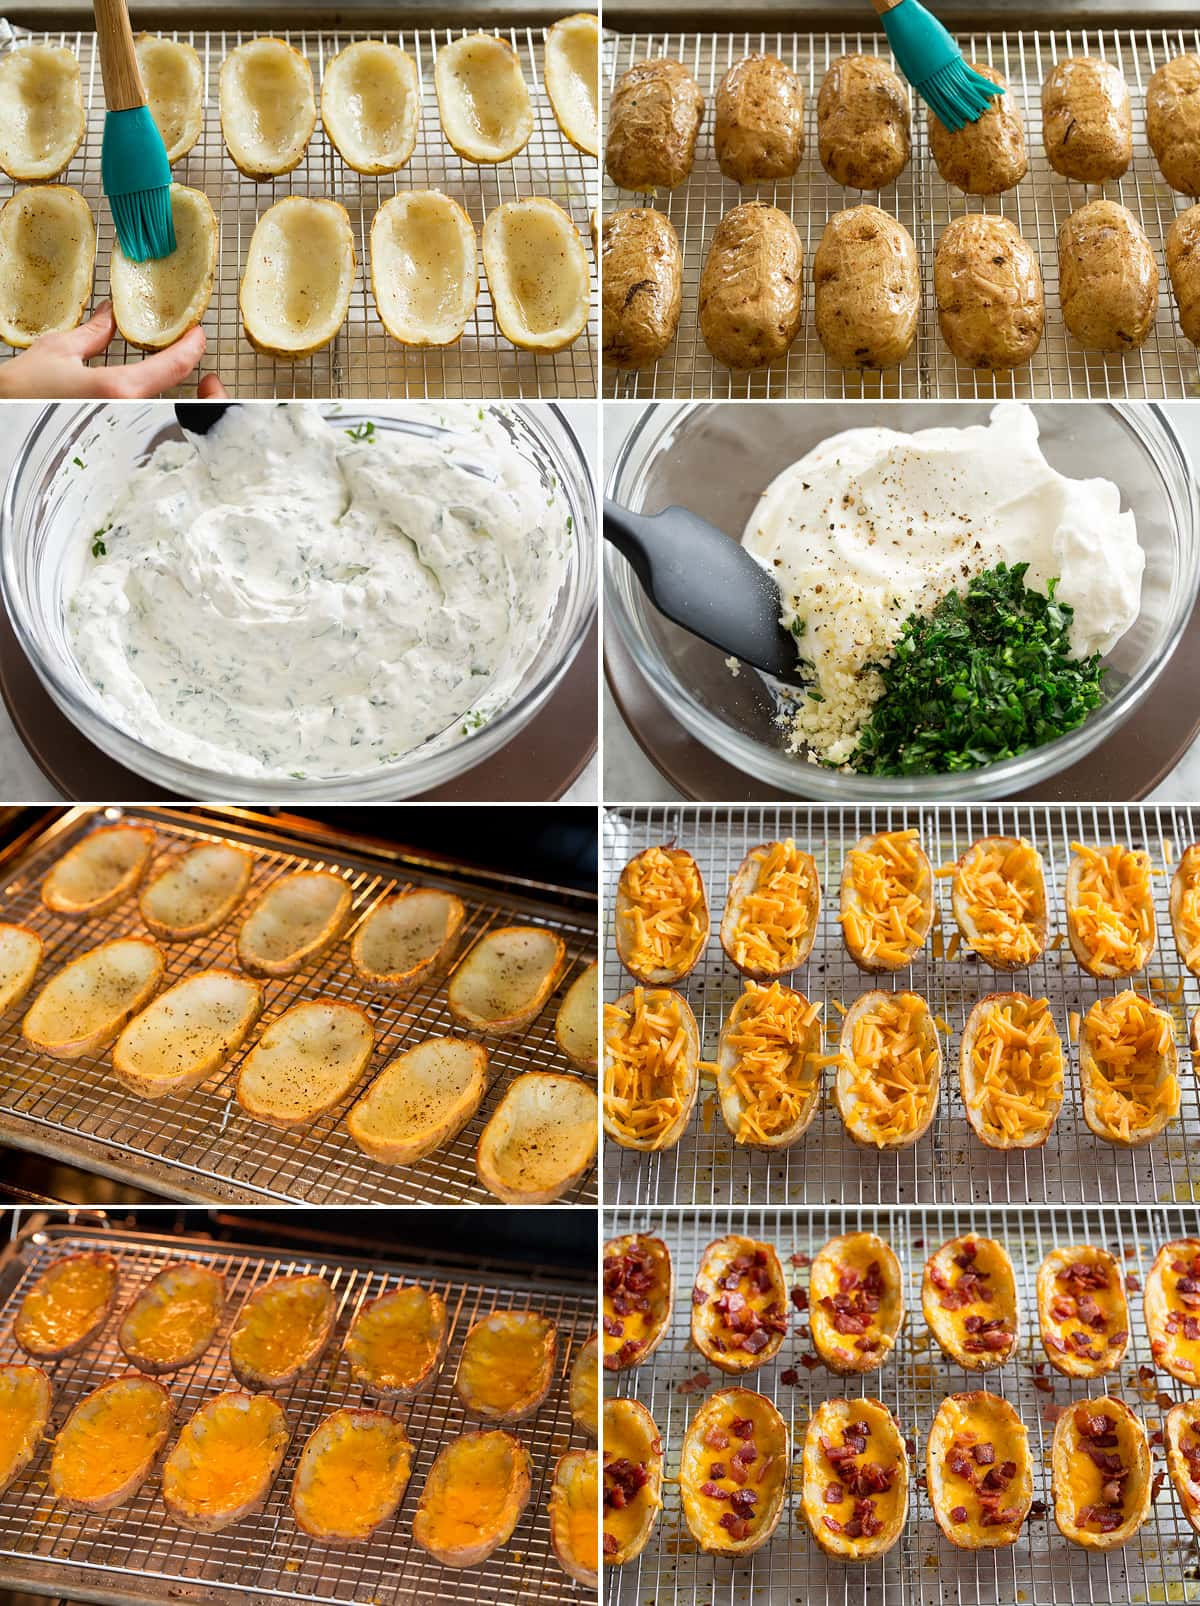 Collage of eight photos showing how to finish potato skins. Includes brushing both sides with rendered bacon fat. Mixing herbed sour cream ingredients. Baking the skins, filling with cheddar and bacon again. Then last finished with bacon.